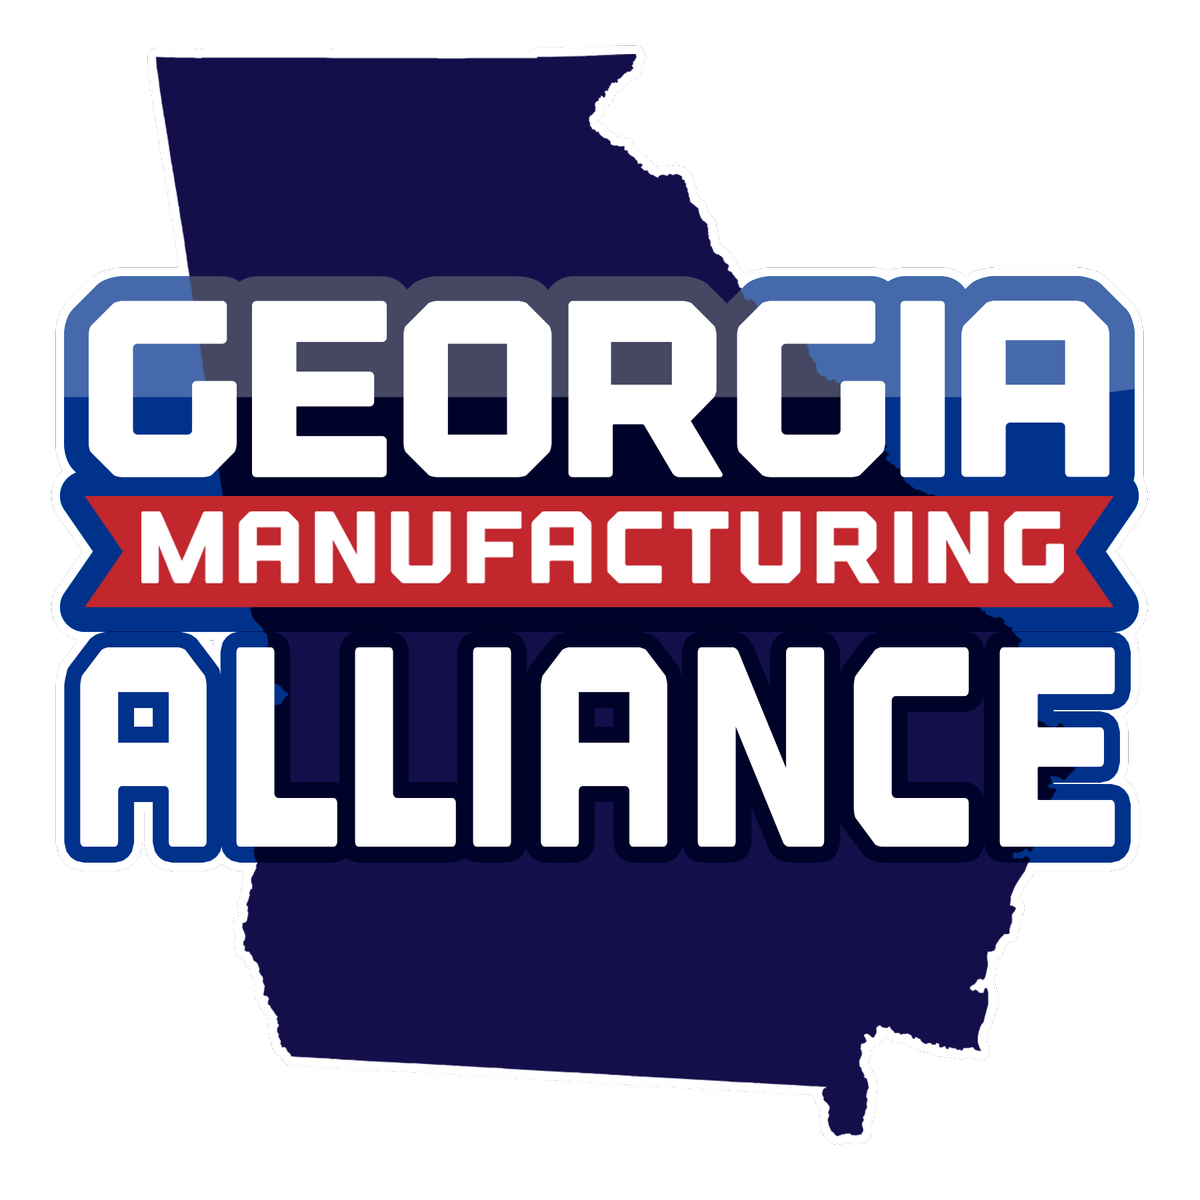 Join SEEBURGER at the Georgia Manufacturing Summit